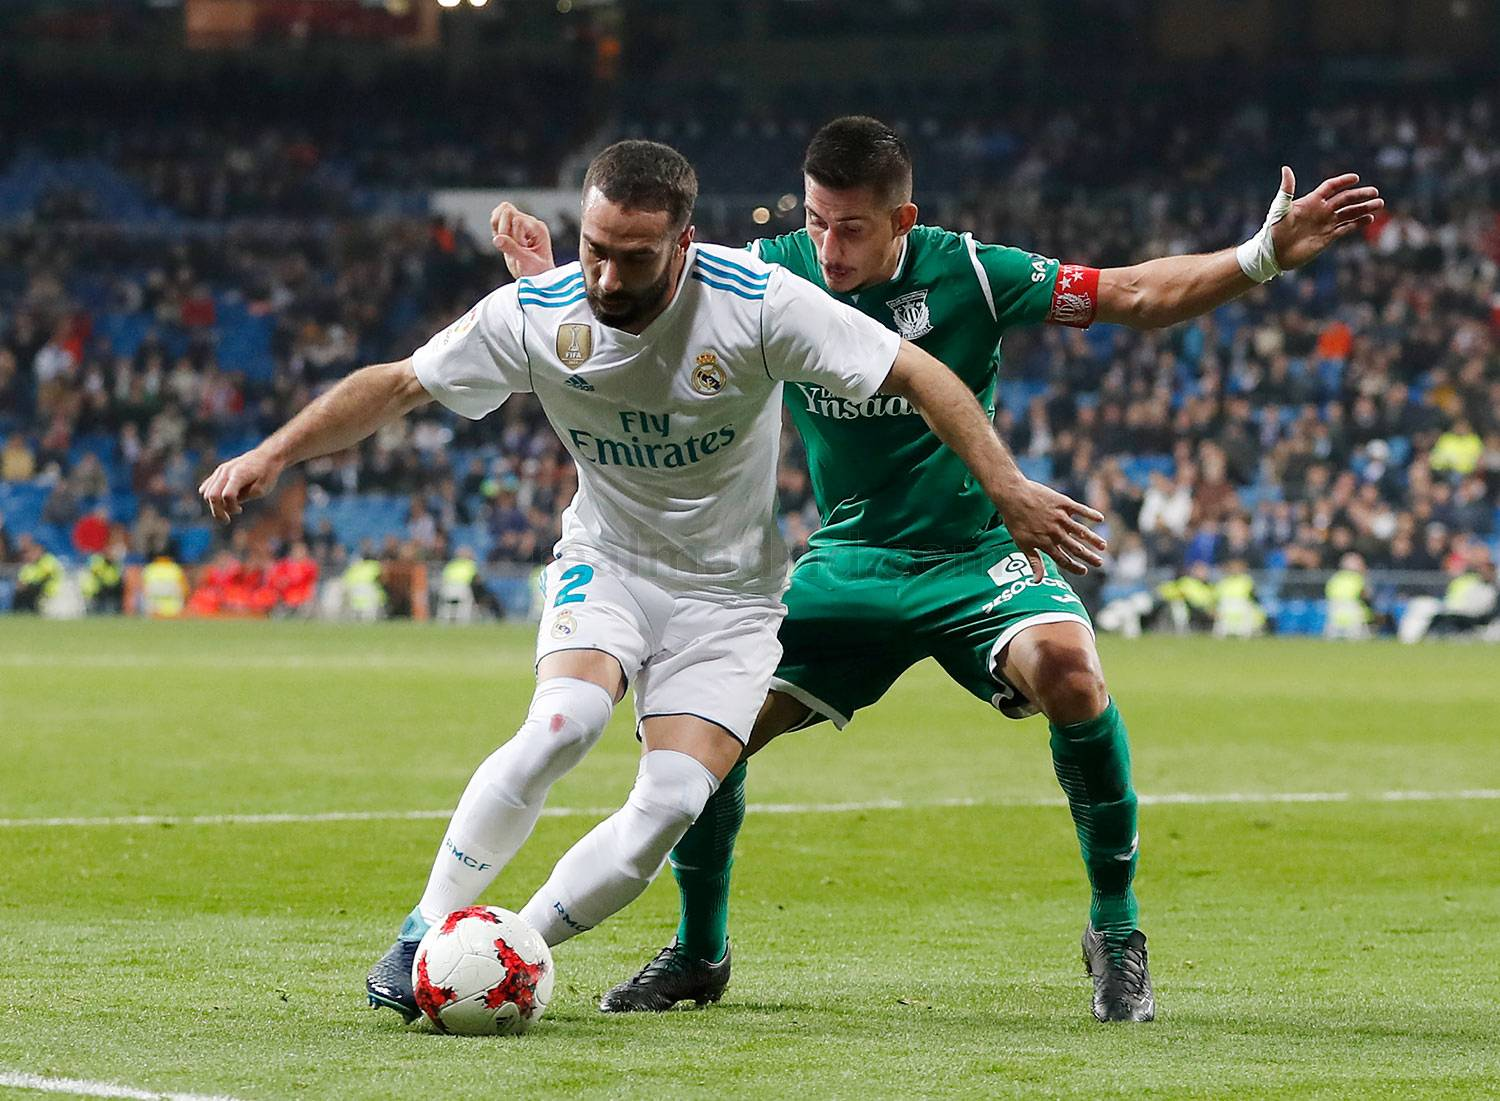 Real Madrid - Real Madrid - Leganés - 25-01-2018